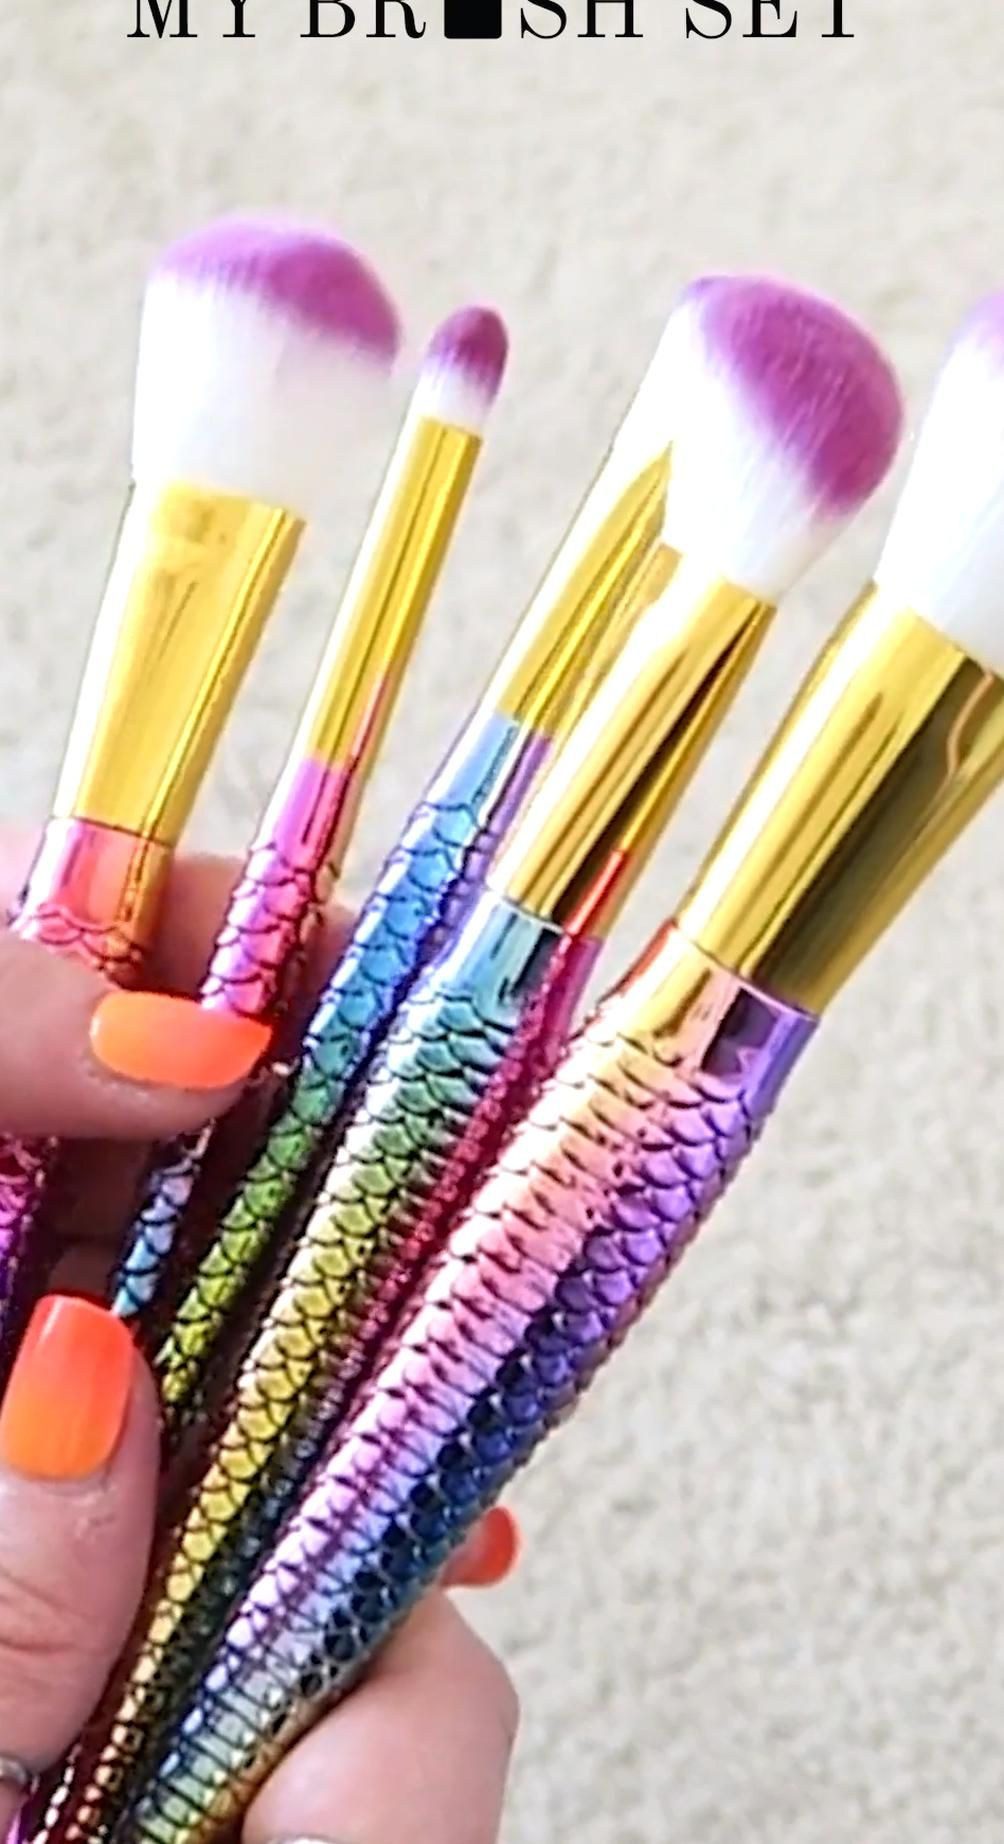 This 10 Piece Mermaid Tail Rainbow Brush Set is the